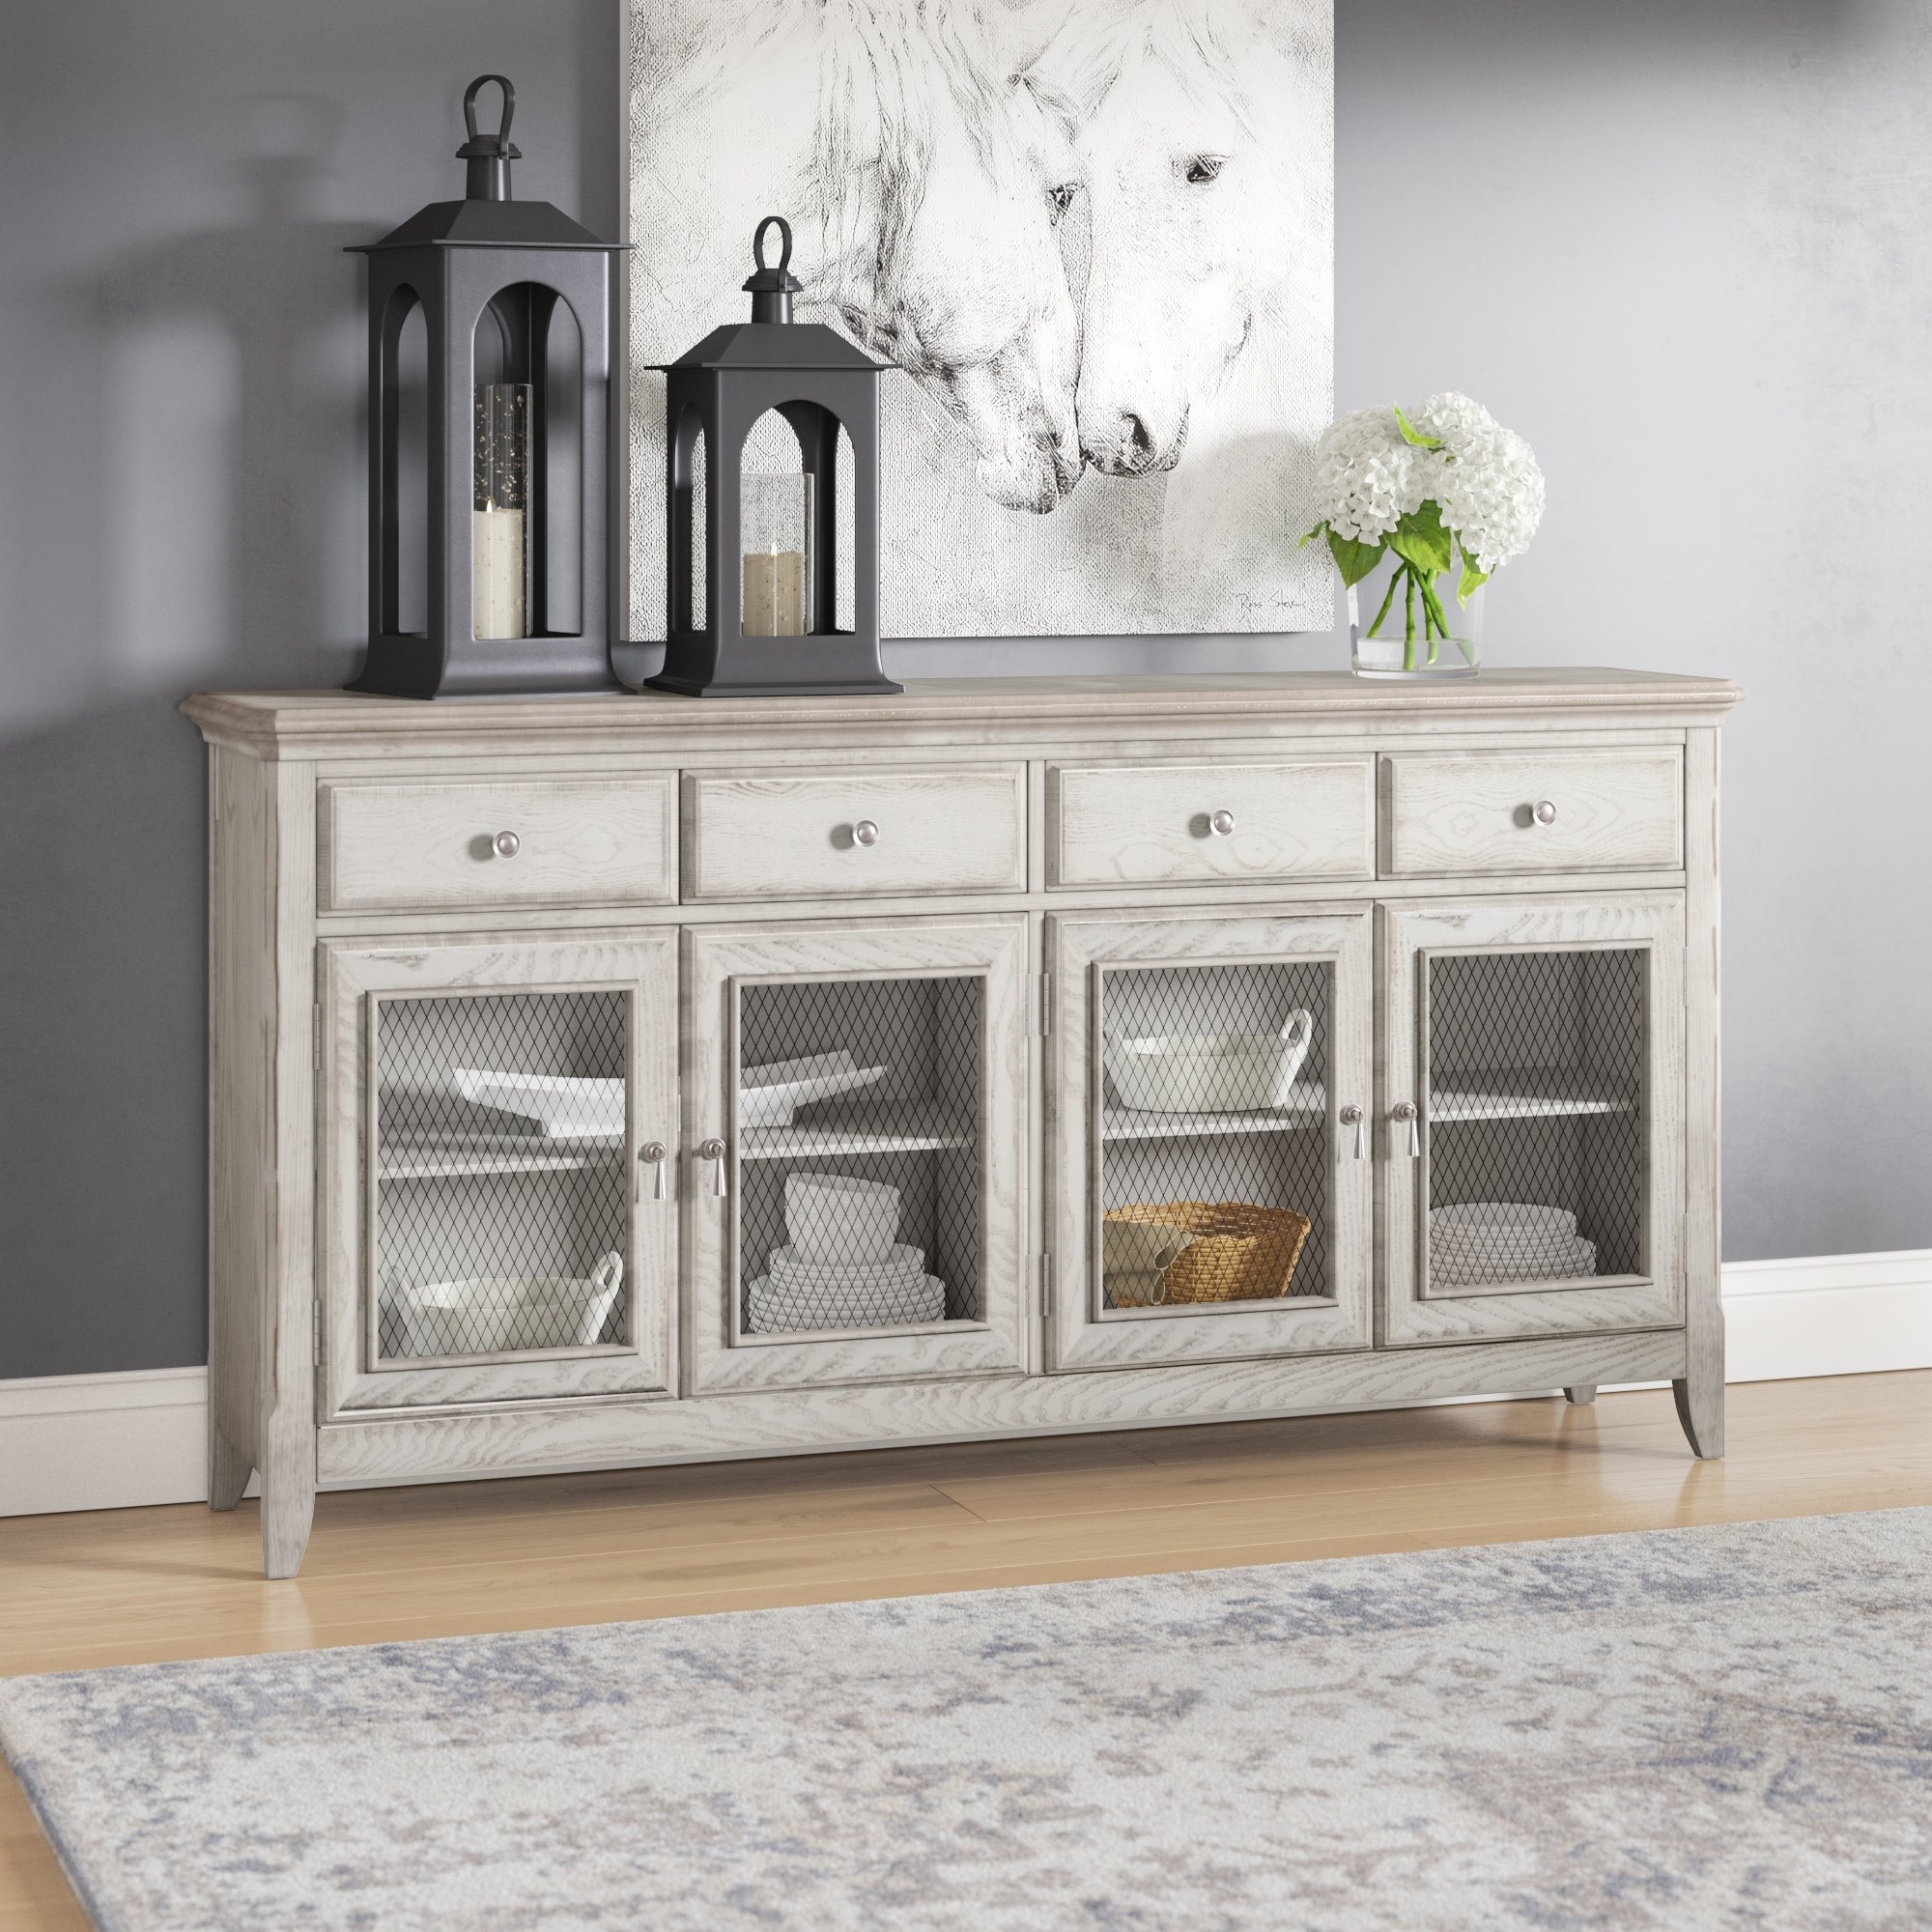 Laurel Foundry Modern Farmhouse Guerrera 4 Door Credenza With Wire Throughout 2017 4 Door 4 Drawer Metal Inserts Sideboards (#12 of 20)